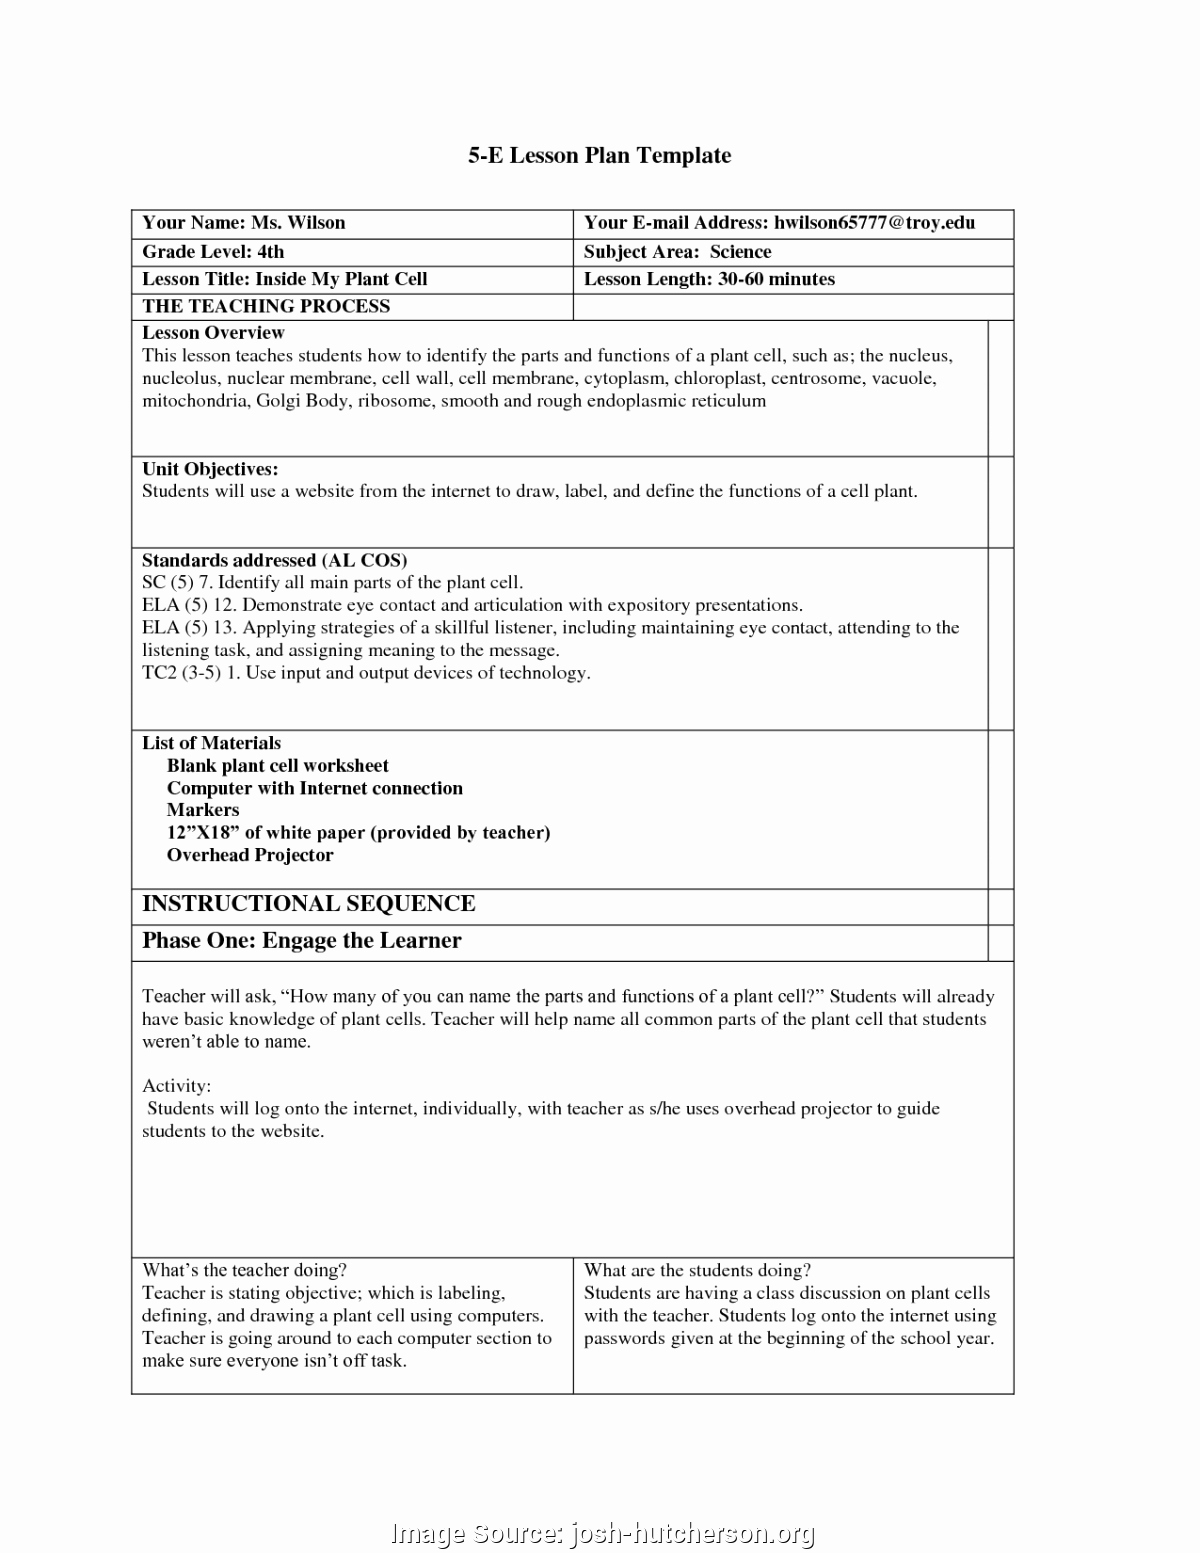 Five E Lesson Plan Template Inspirational Briliant Advertising Lesson Plan Advertising Lesson Plans